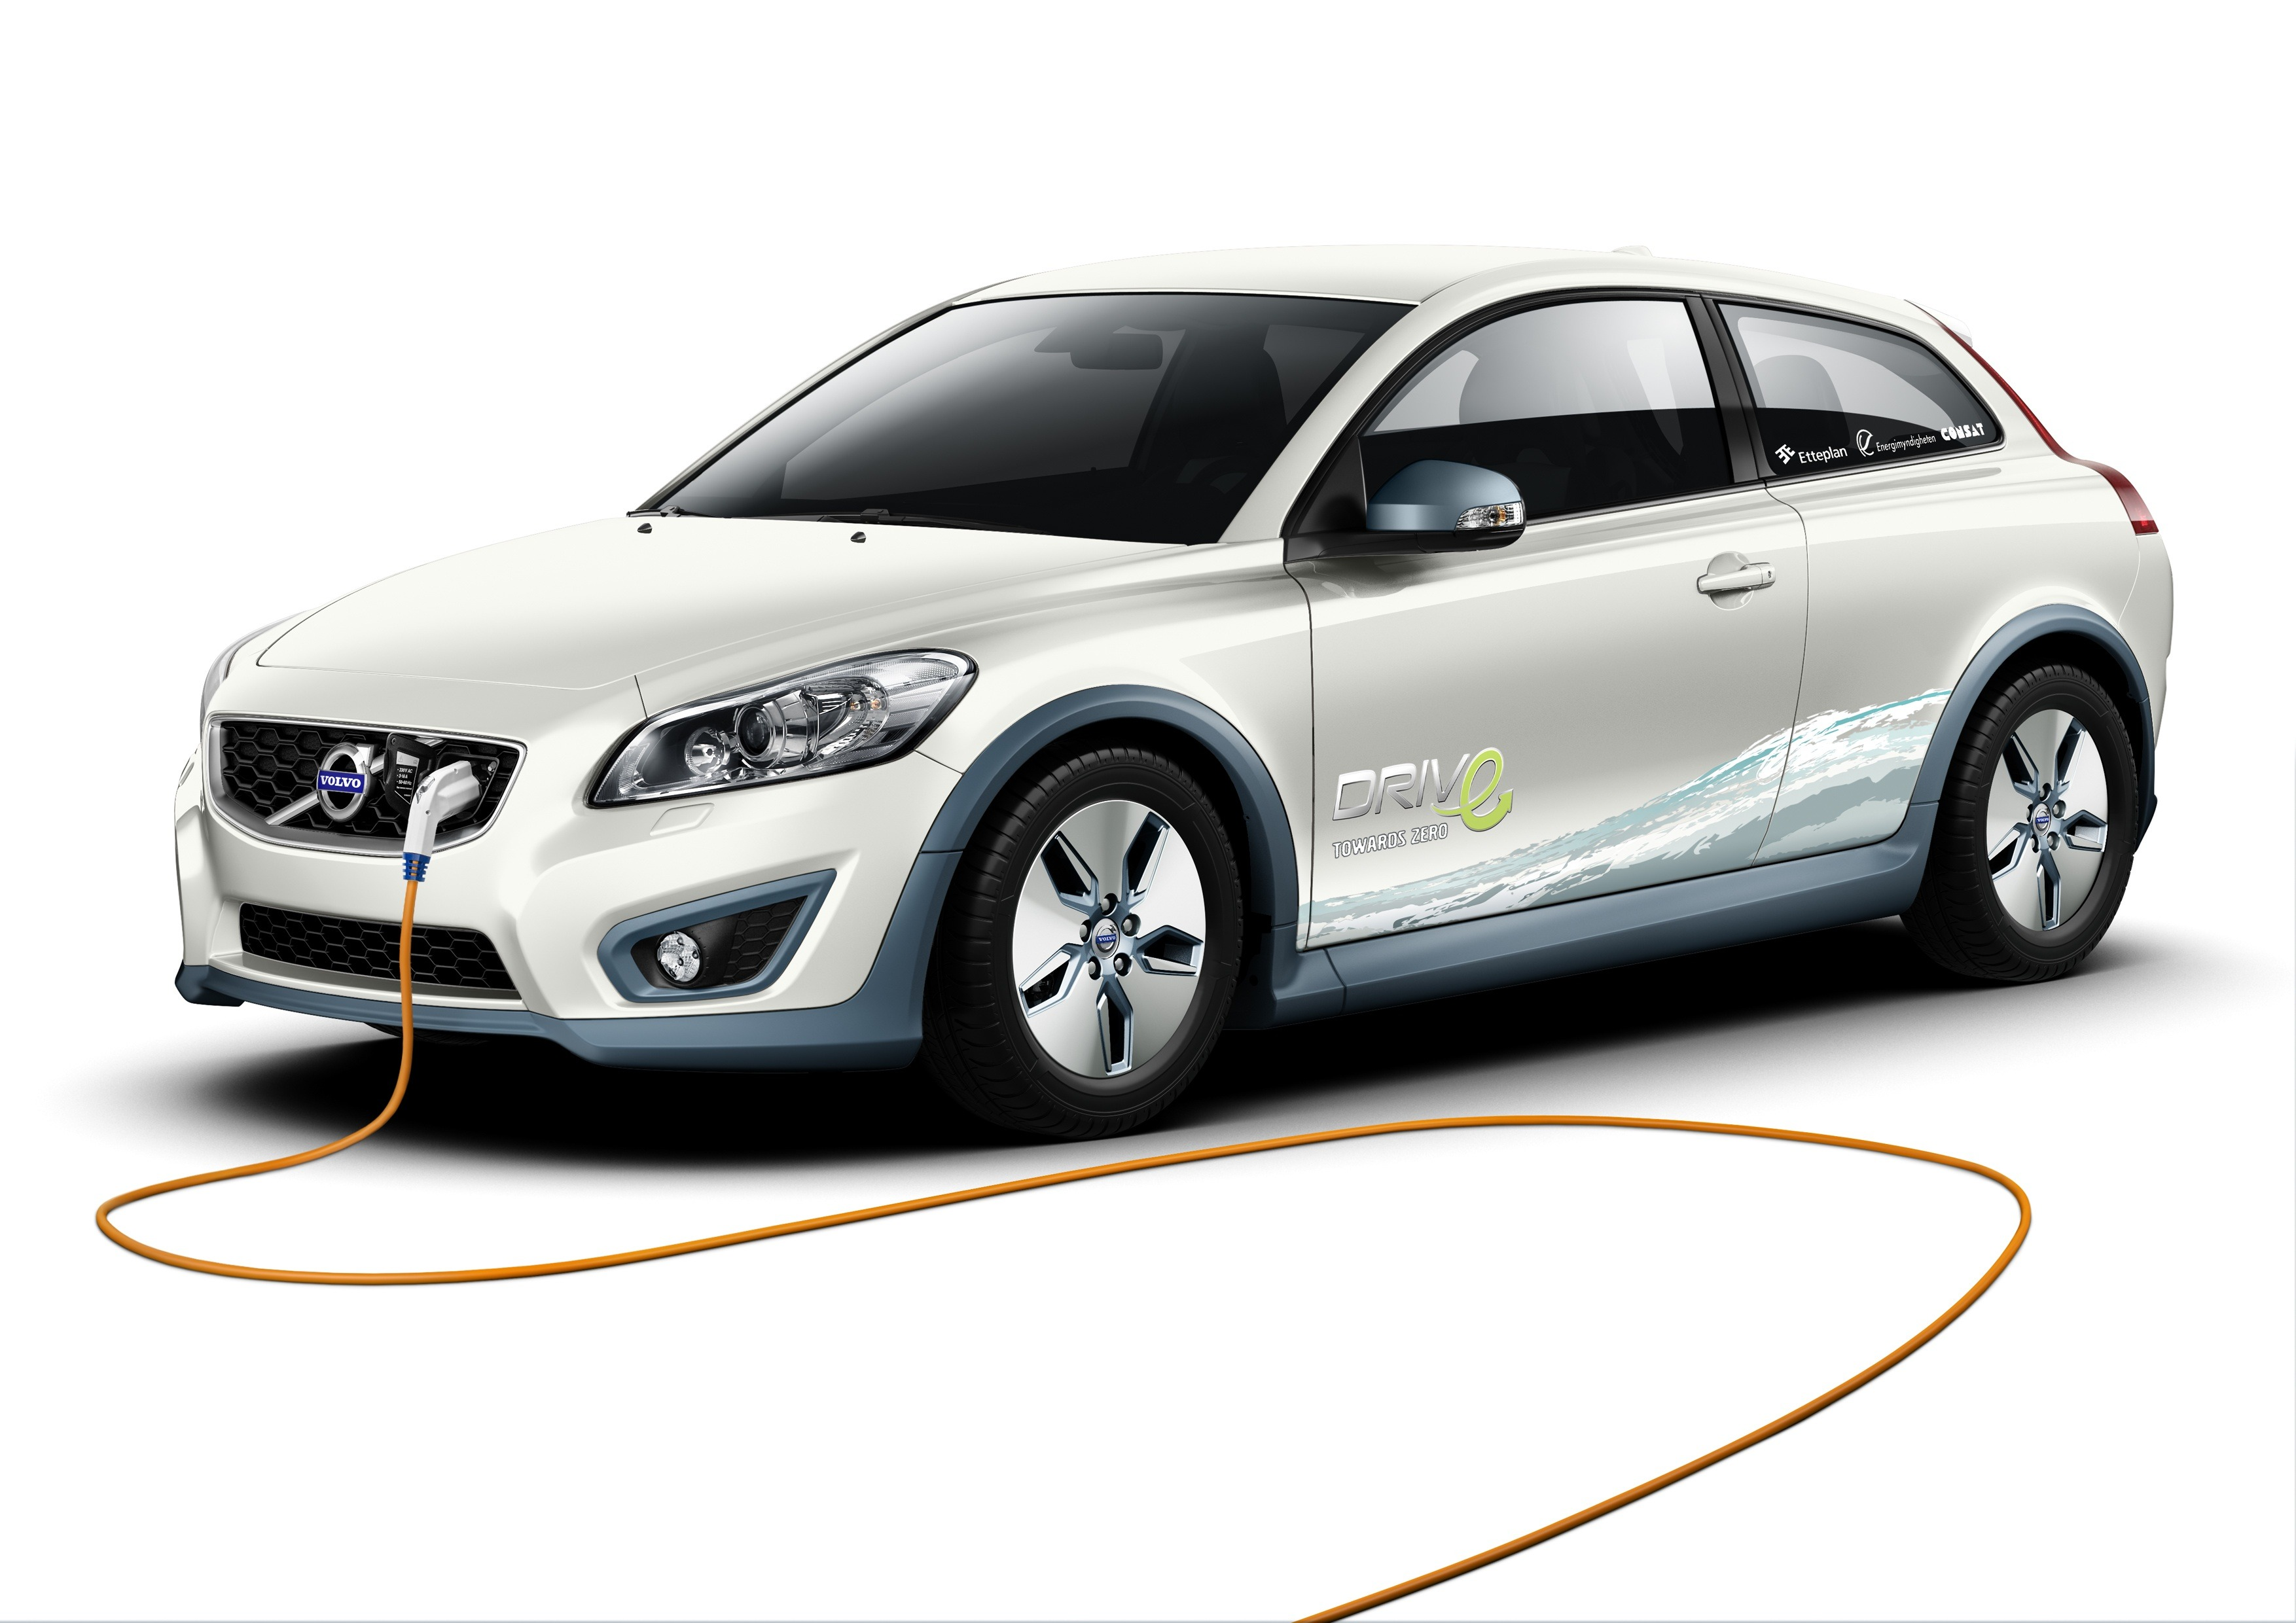 Volvo's electric C30 concept has a 94-mile range, but the carmaker is planning to add a fuel cell and an on-board reformer to produce hydrogen from gasoline and extend the vehicle's range by 155 miles.